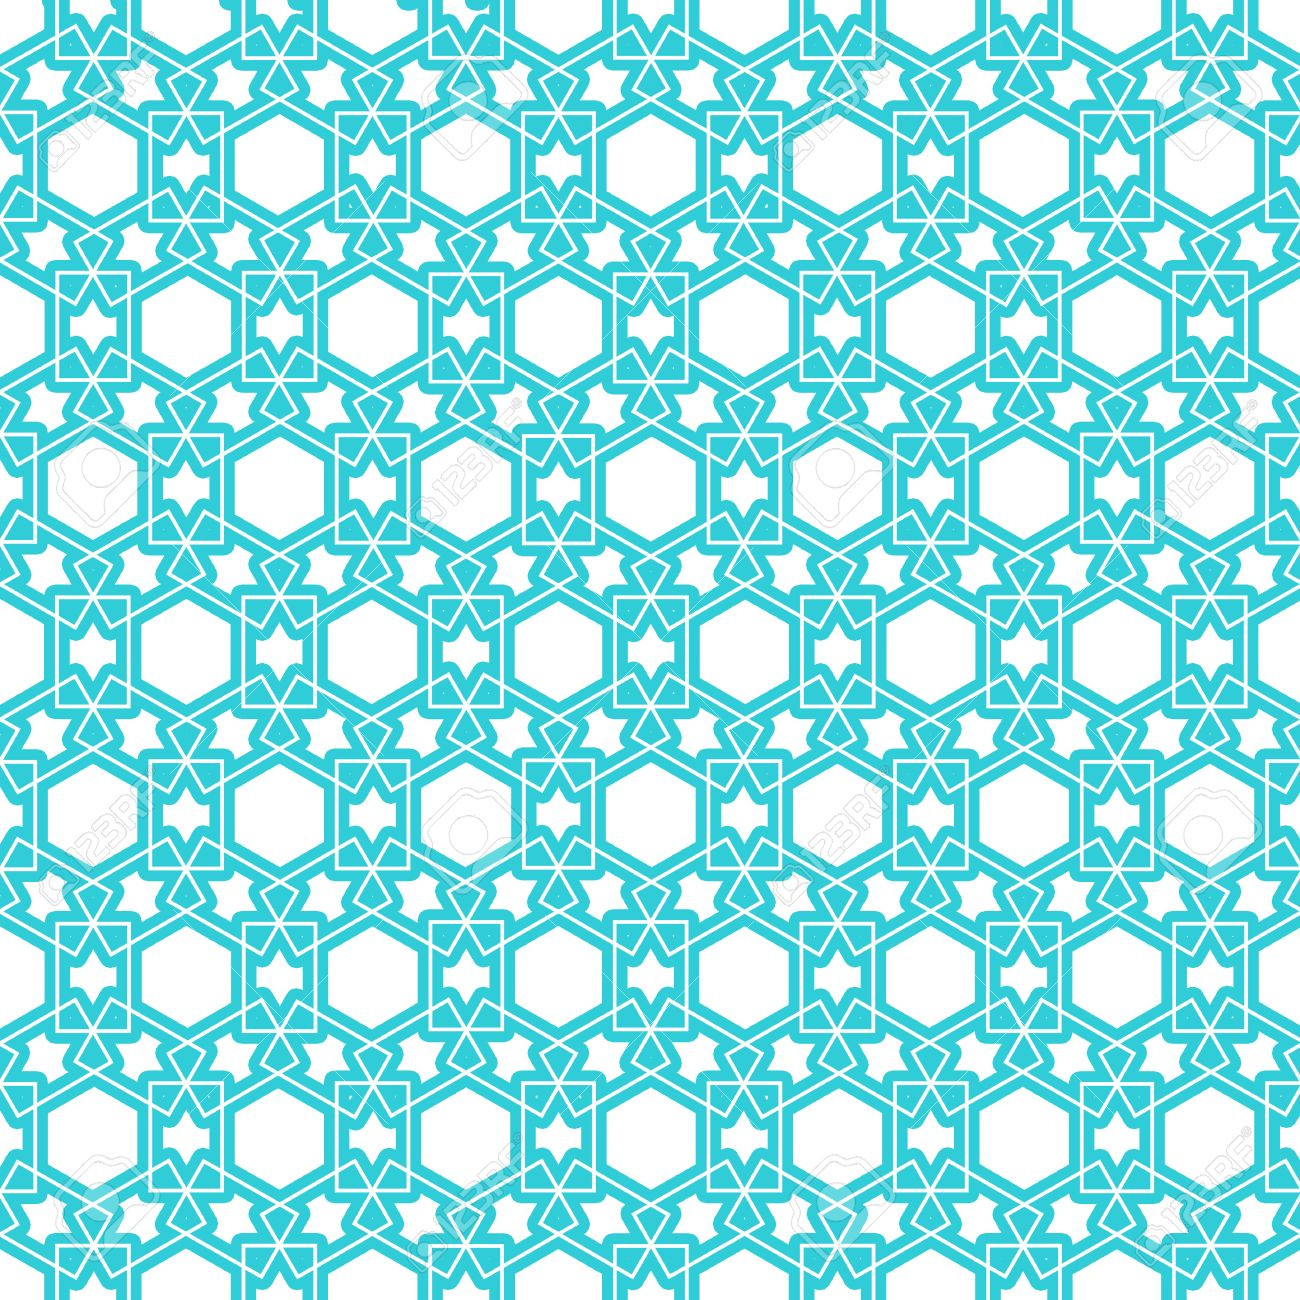 Nice Islamic Persian Pattern Background Royalty Free Cliparts Vectors And Stock Illustration Image 31059452